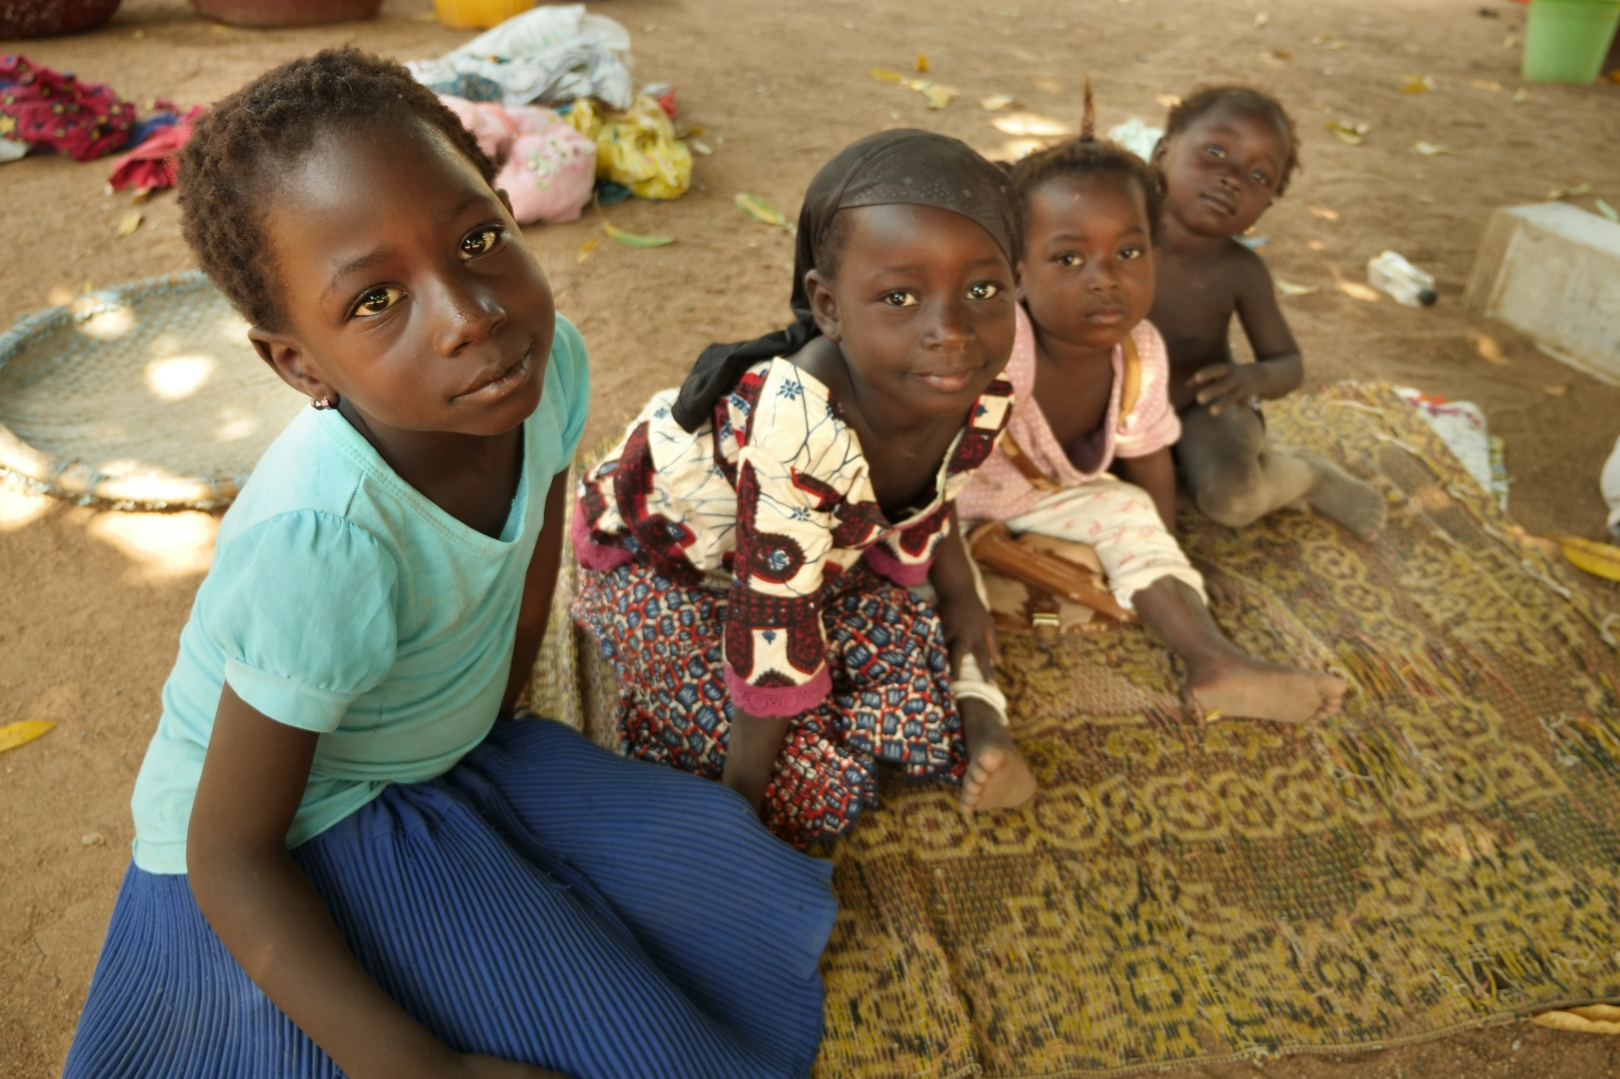 children in Cote d'Ivoire look at the camera